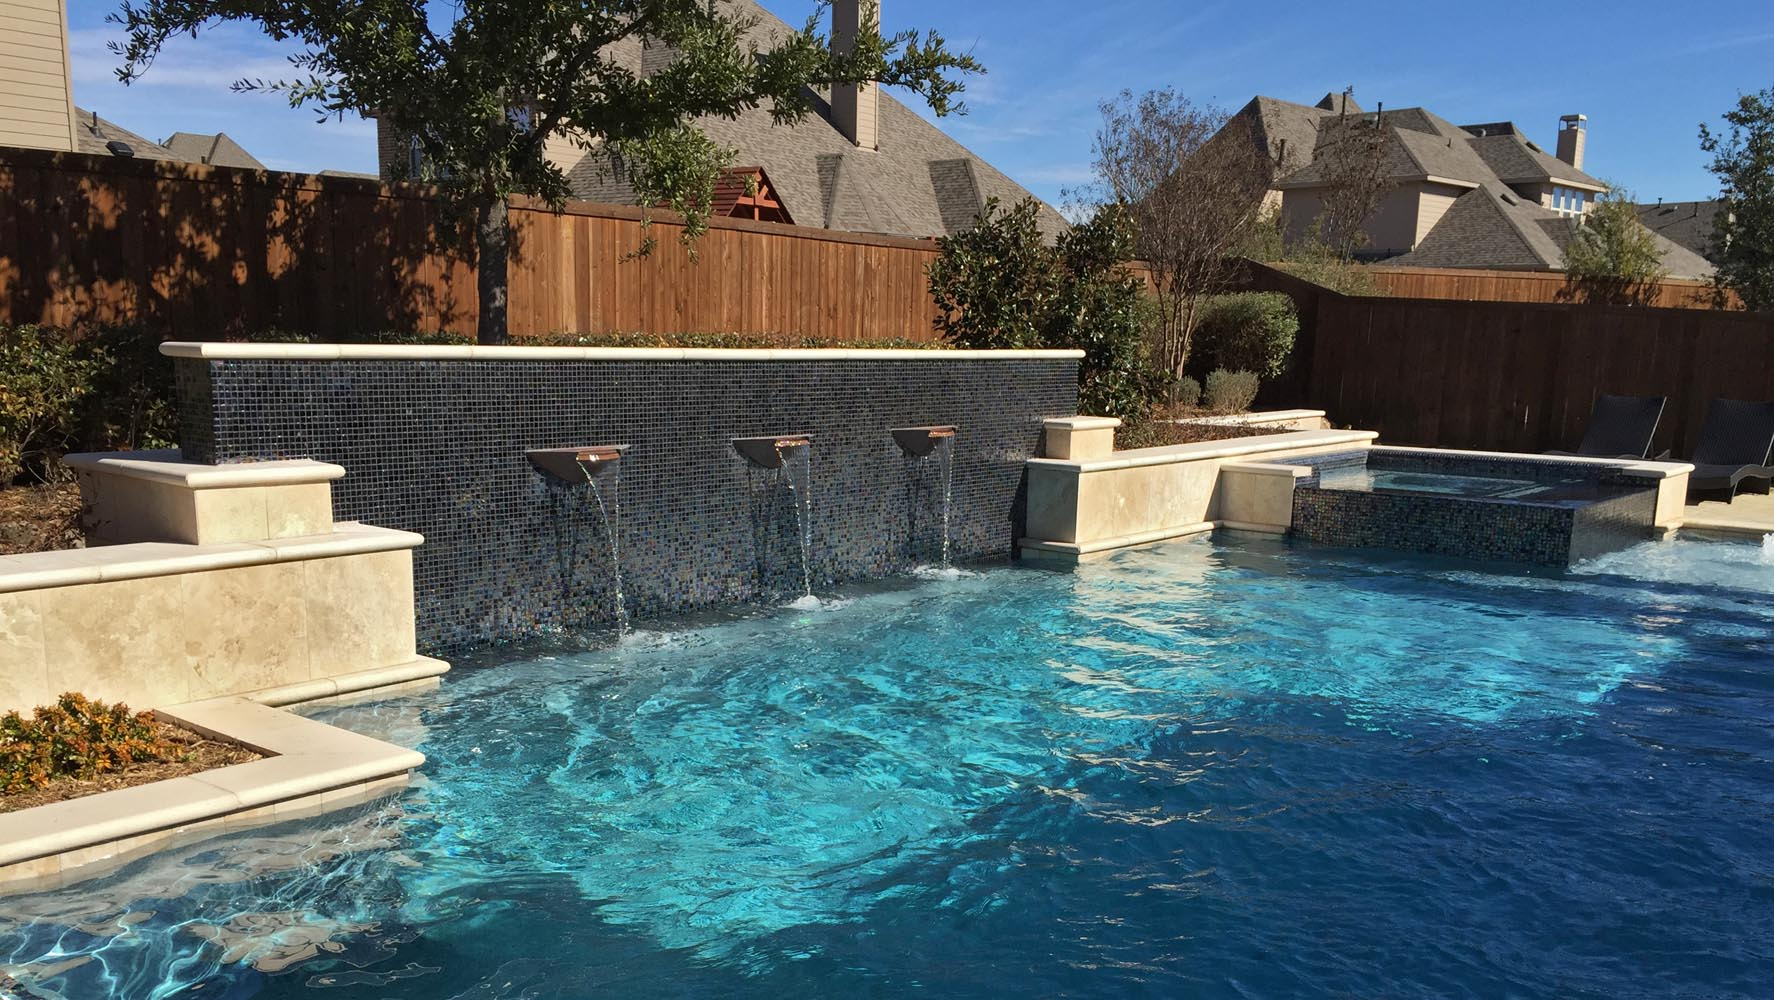 Dallas plano pool fountains custom water features gallery for Water pool design